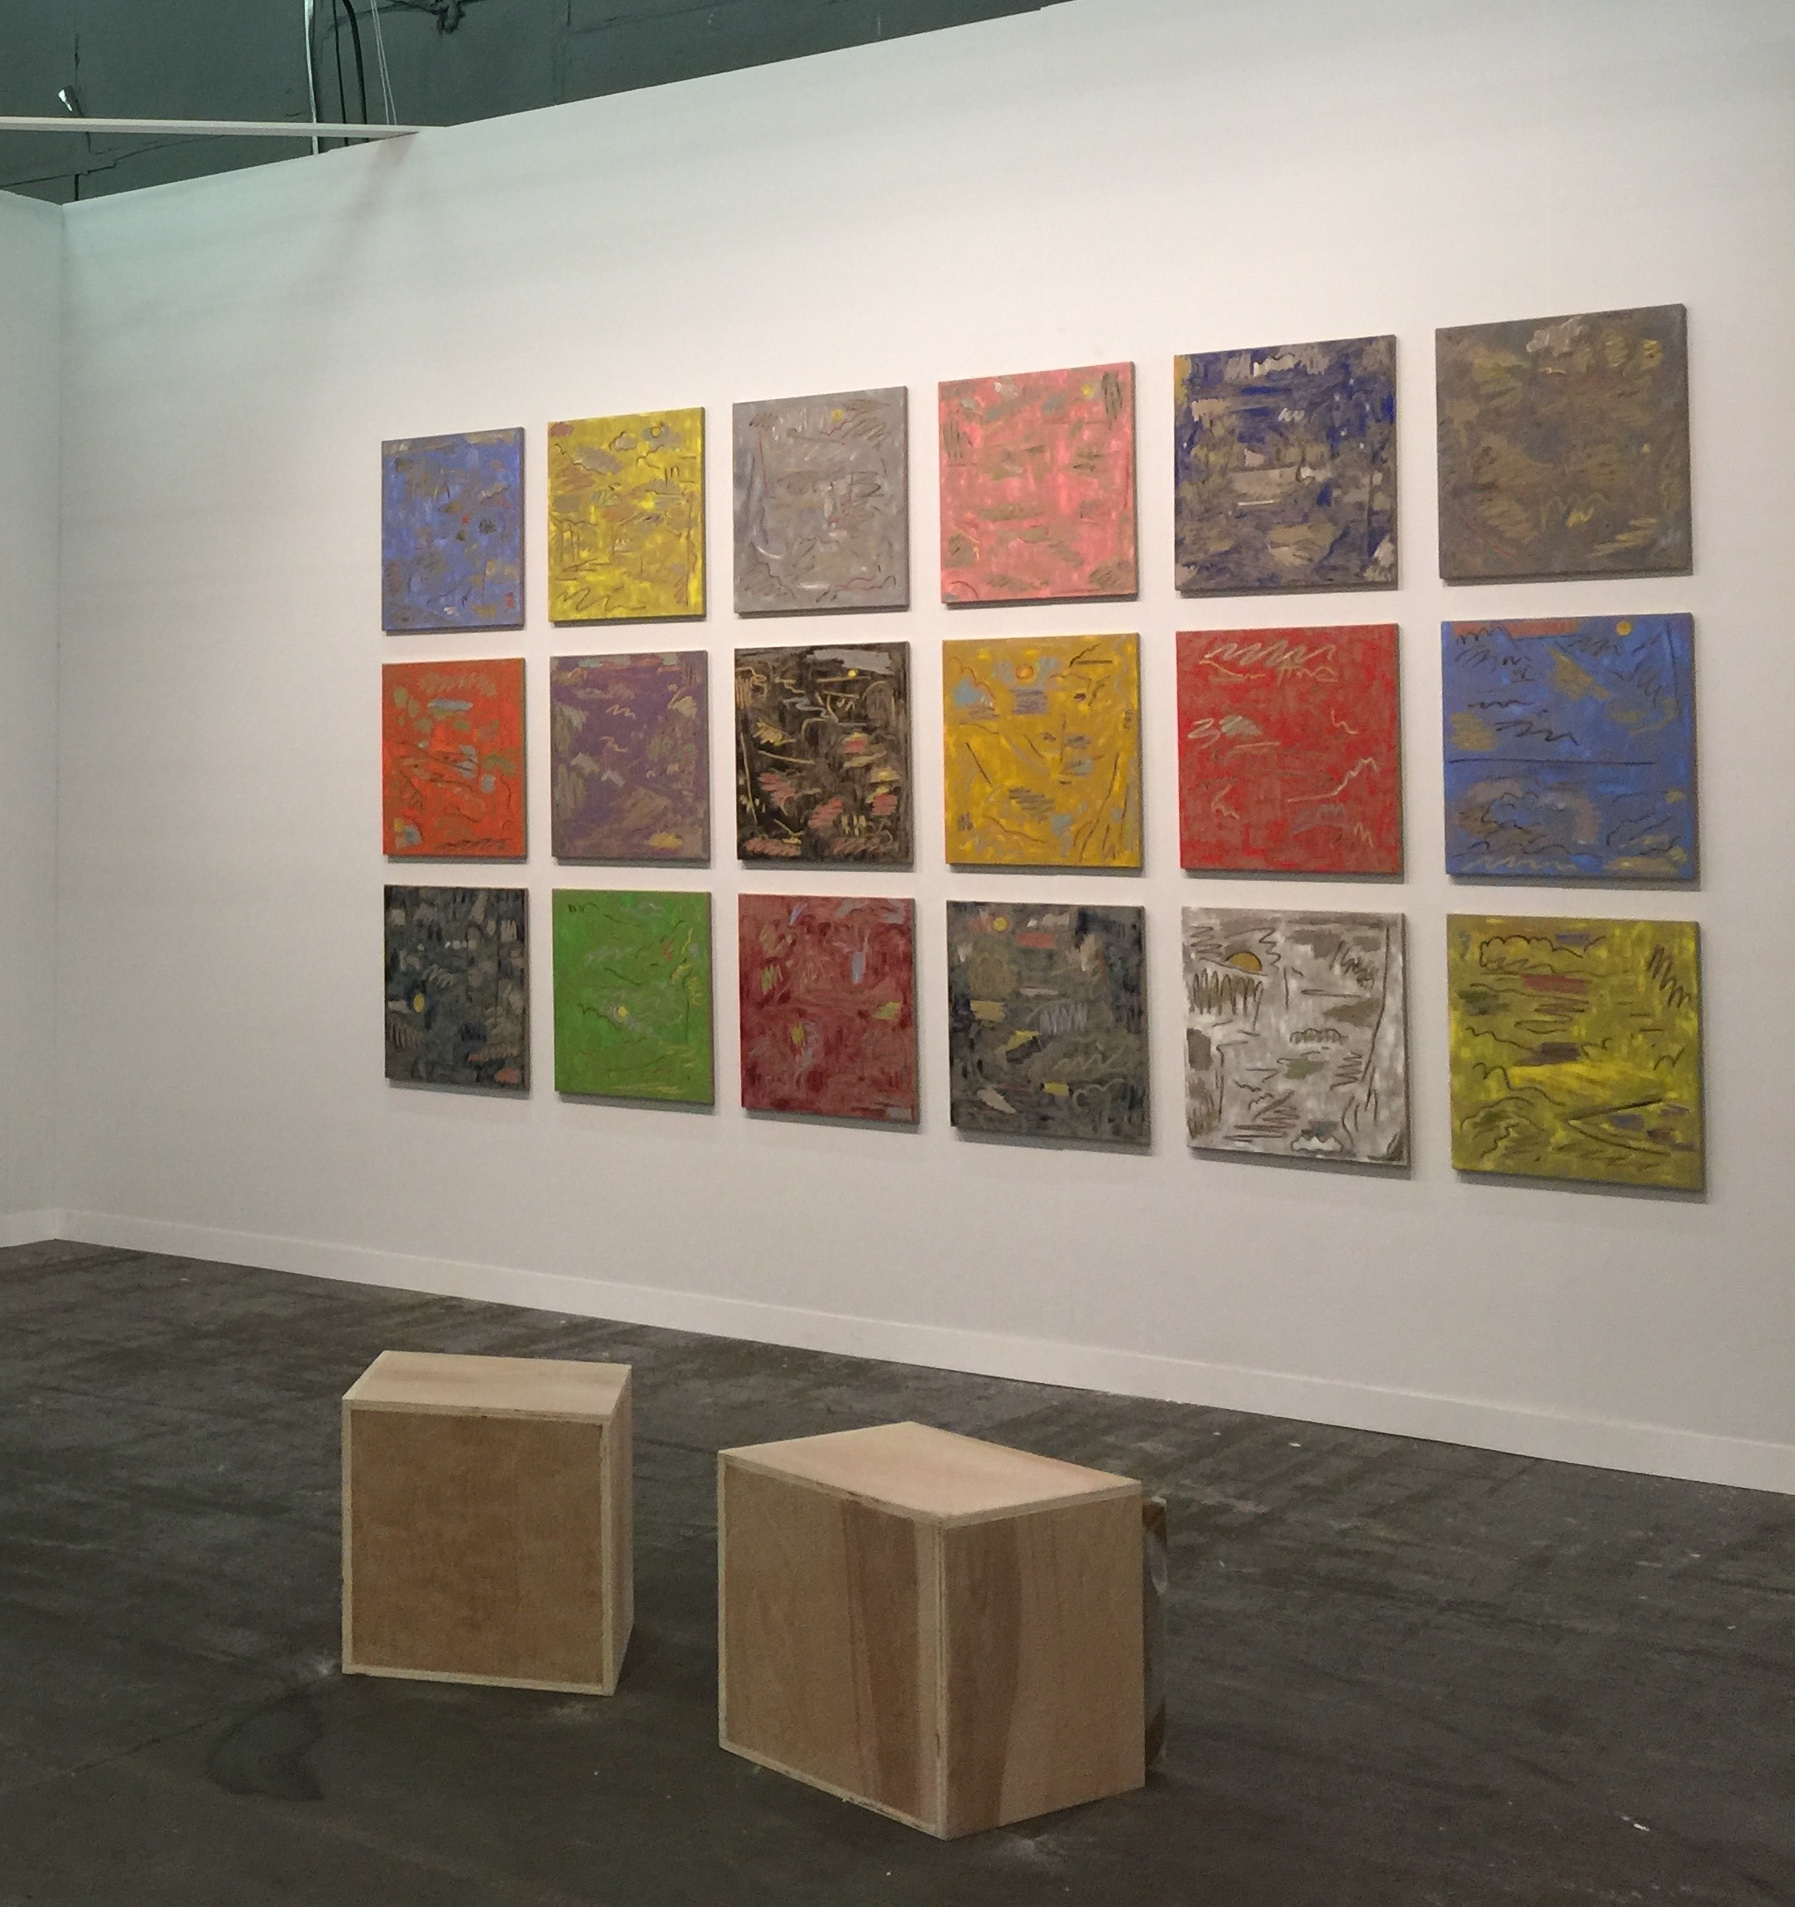 Ryan Nord Kitchen, Installation View at The Armory Show, 2017, Oil on linen, 24 x 21 inches each  Courtesy of the artist and Nicelle Beauchene Gallery, New York